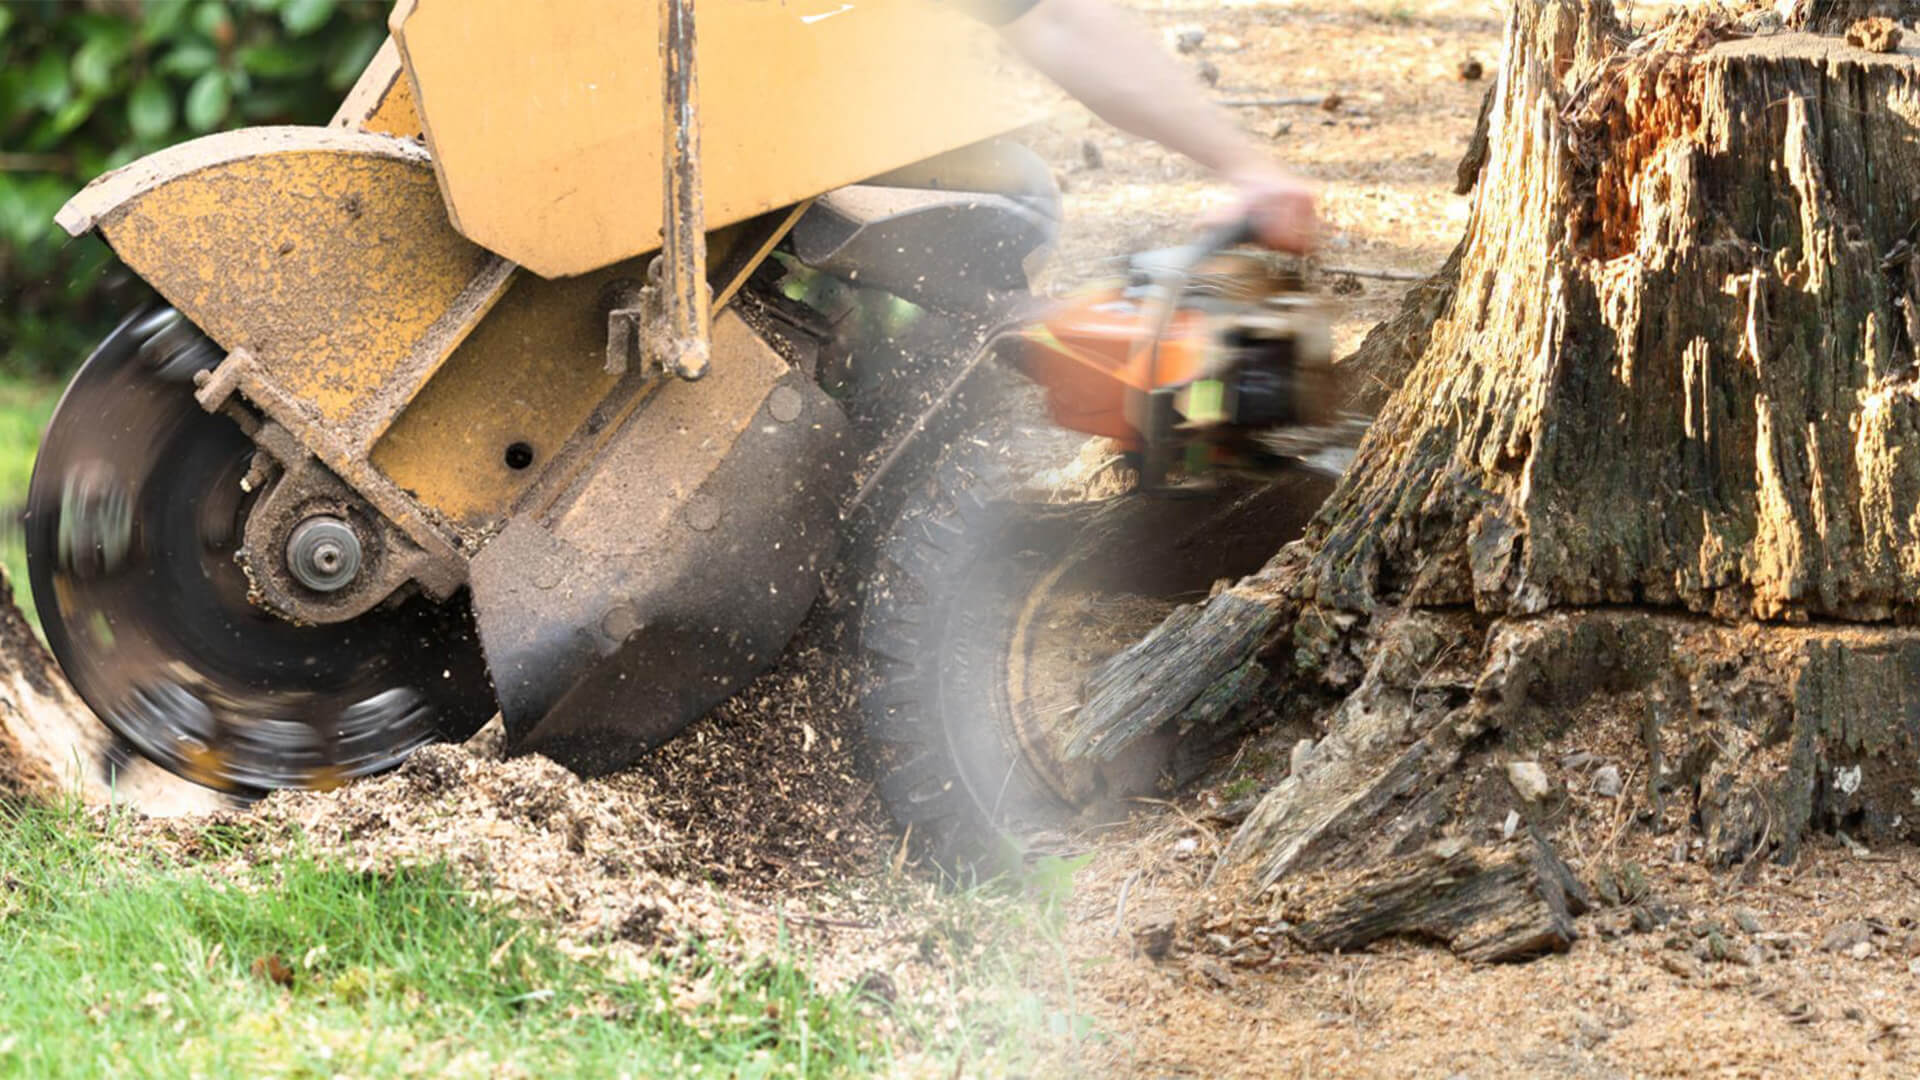 Stump grinding & removal-Tamiami FL Tree Trimming and Stump Grinding Services-We Offer Tree Trimming Services, Tree Removal, Tree Pruning, Tree Cutting, Residential and Commercial Tree Trimming Services, Storm Damage, Emergency Tree Removal, Land Clearing, Tree Companies, Tree Care Service, Stump Grinding, and we're the Best Tree Trimming Company Near You Guaranteed!